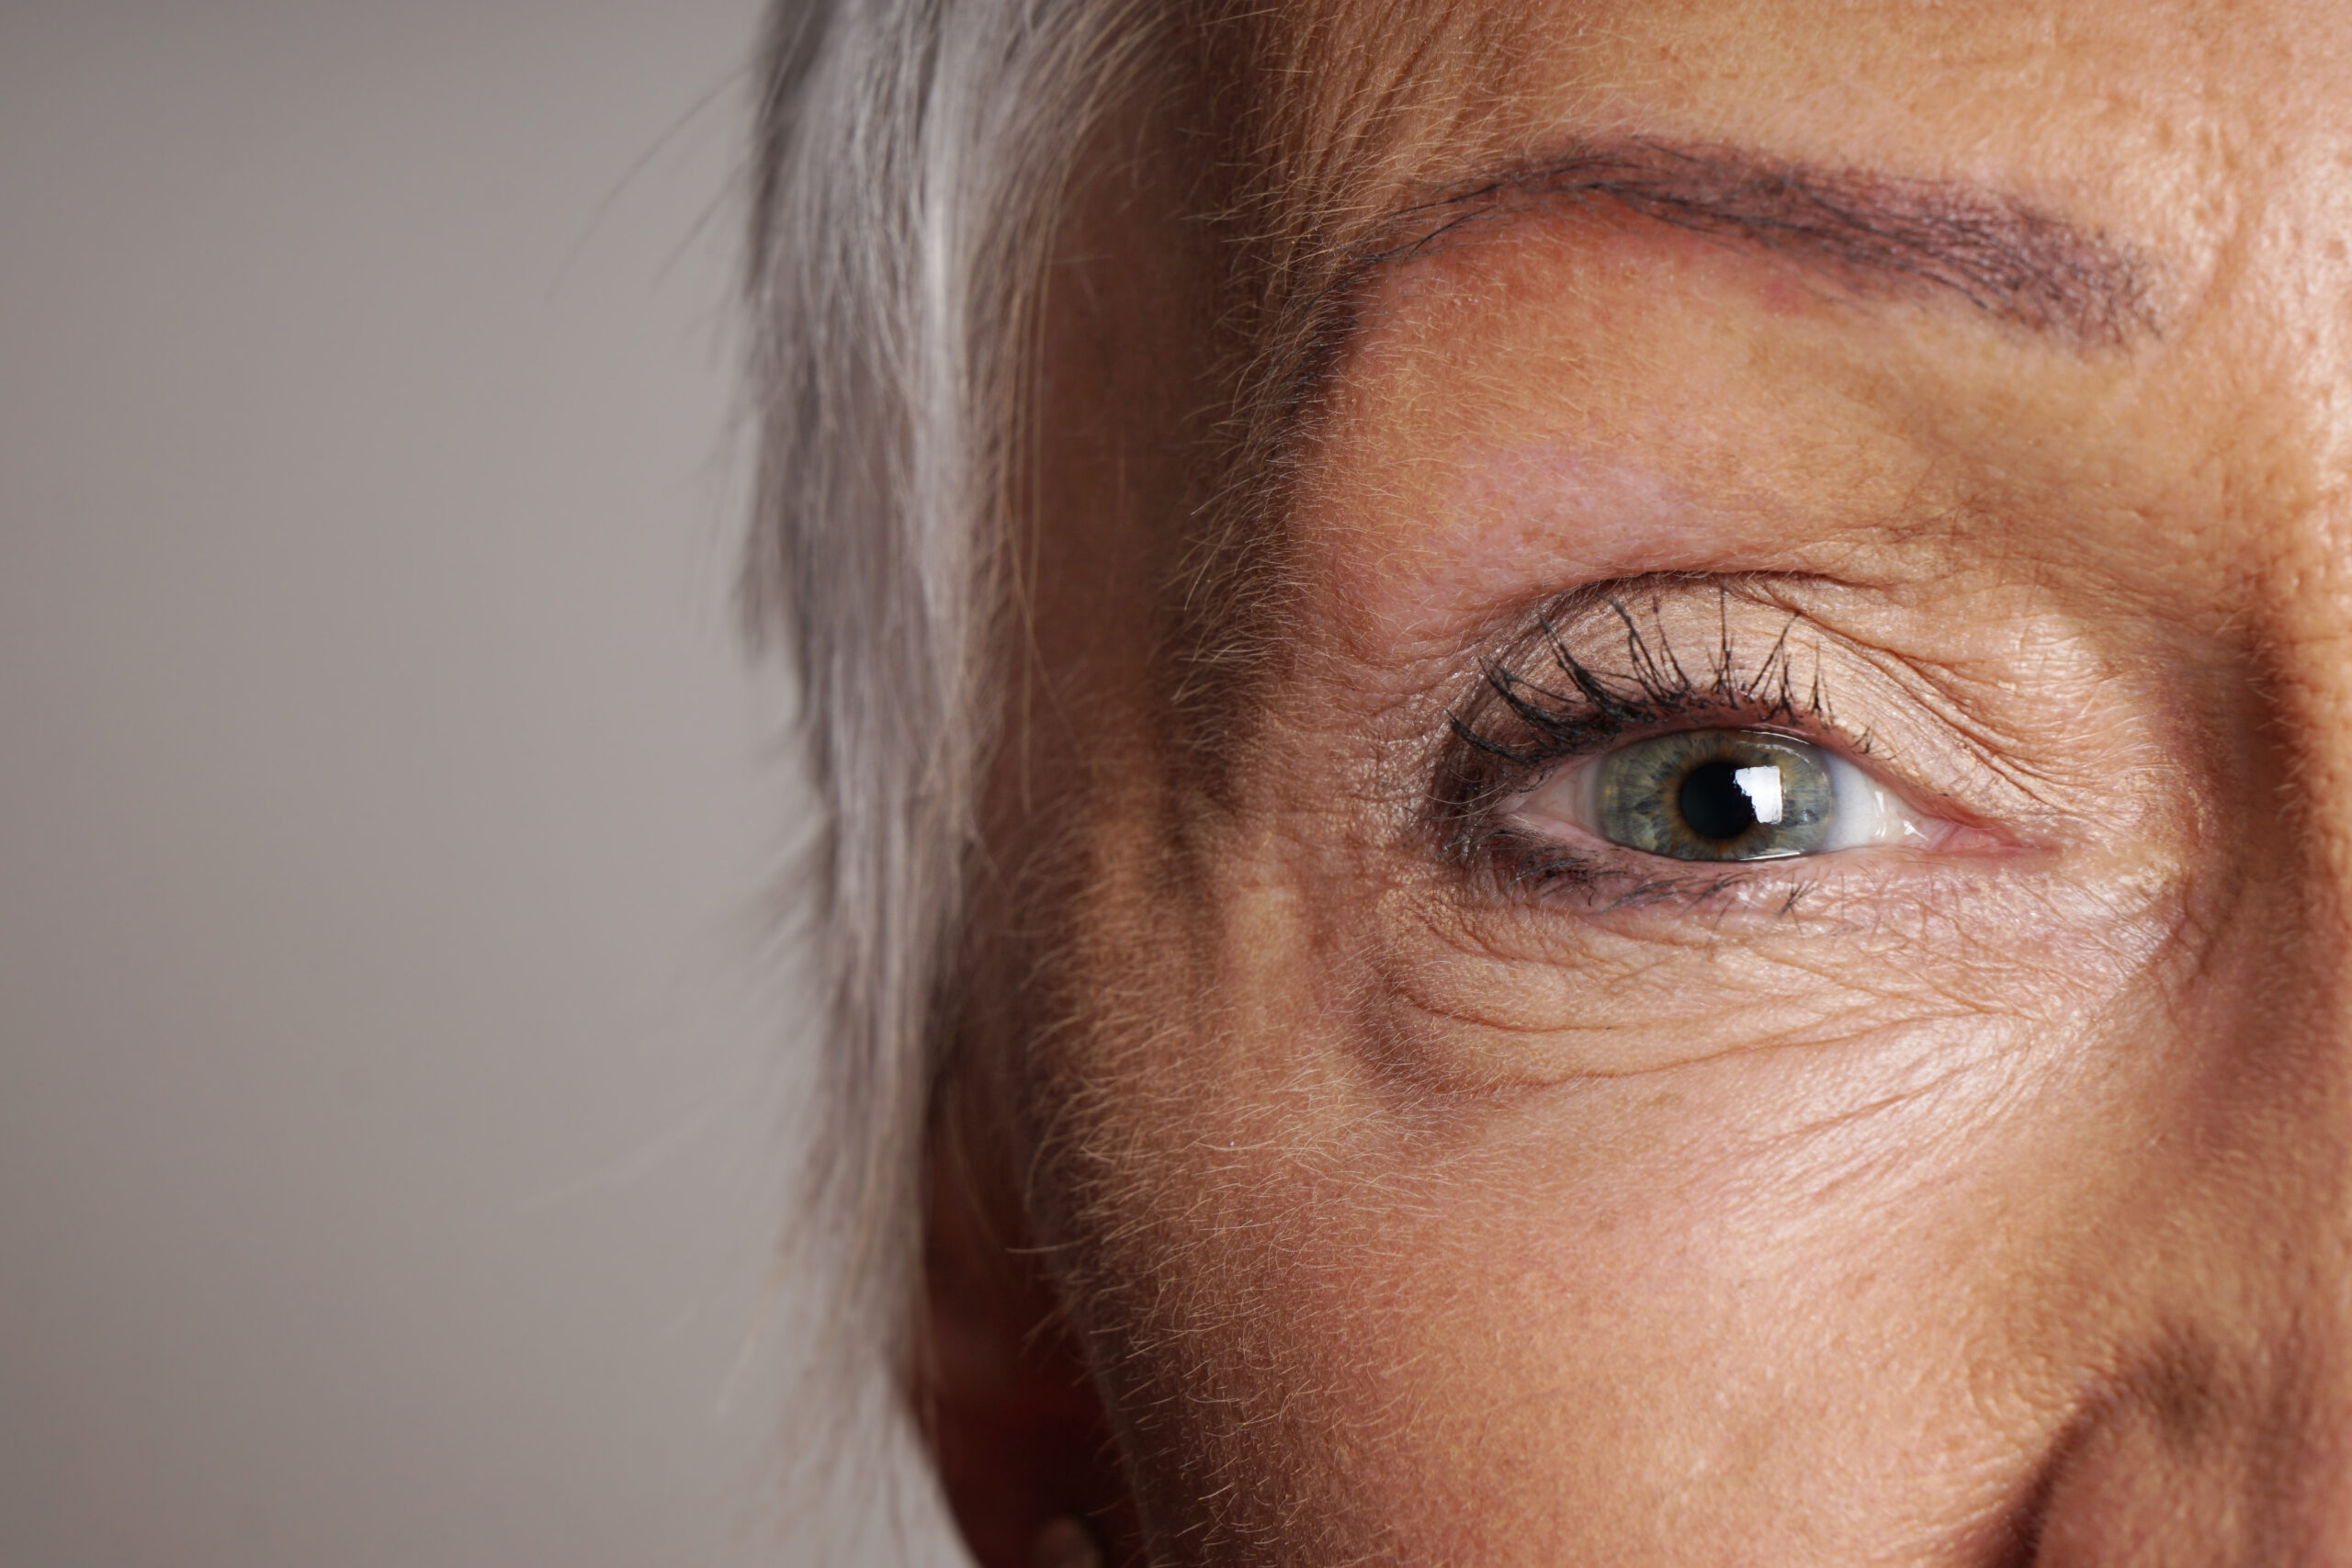 Facial aging: wrinkles around eye, female face